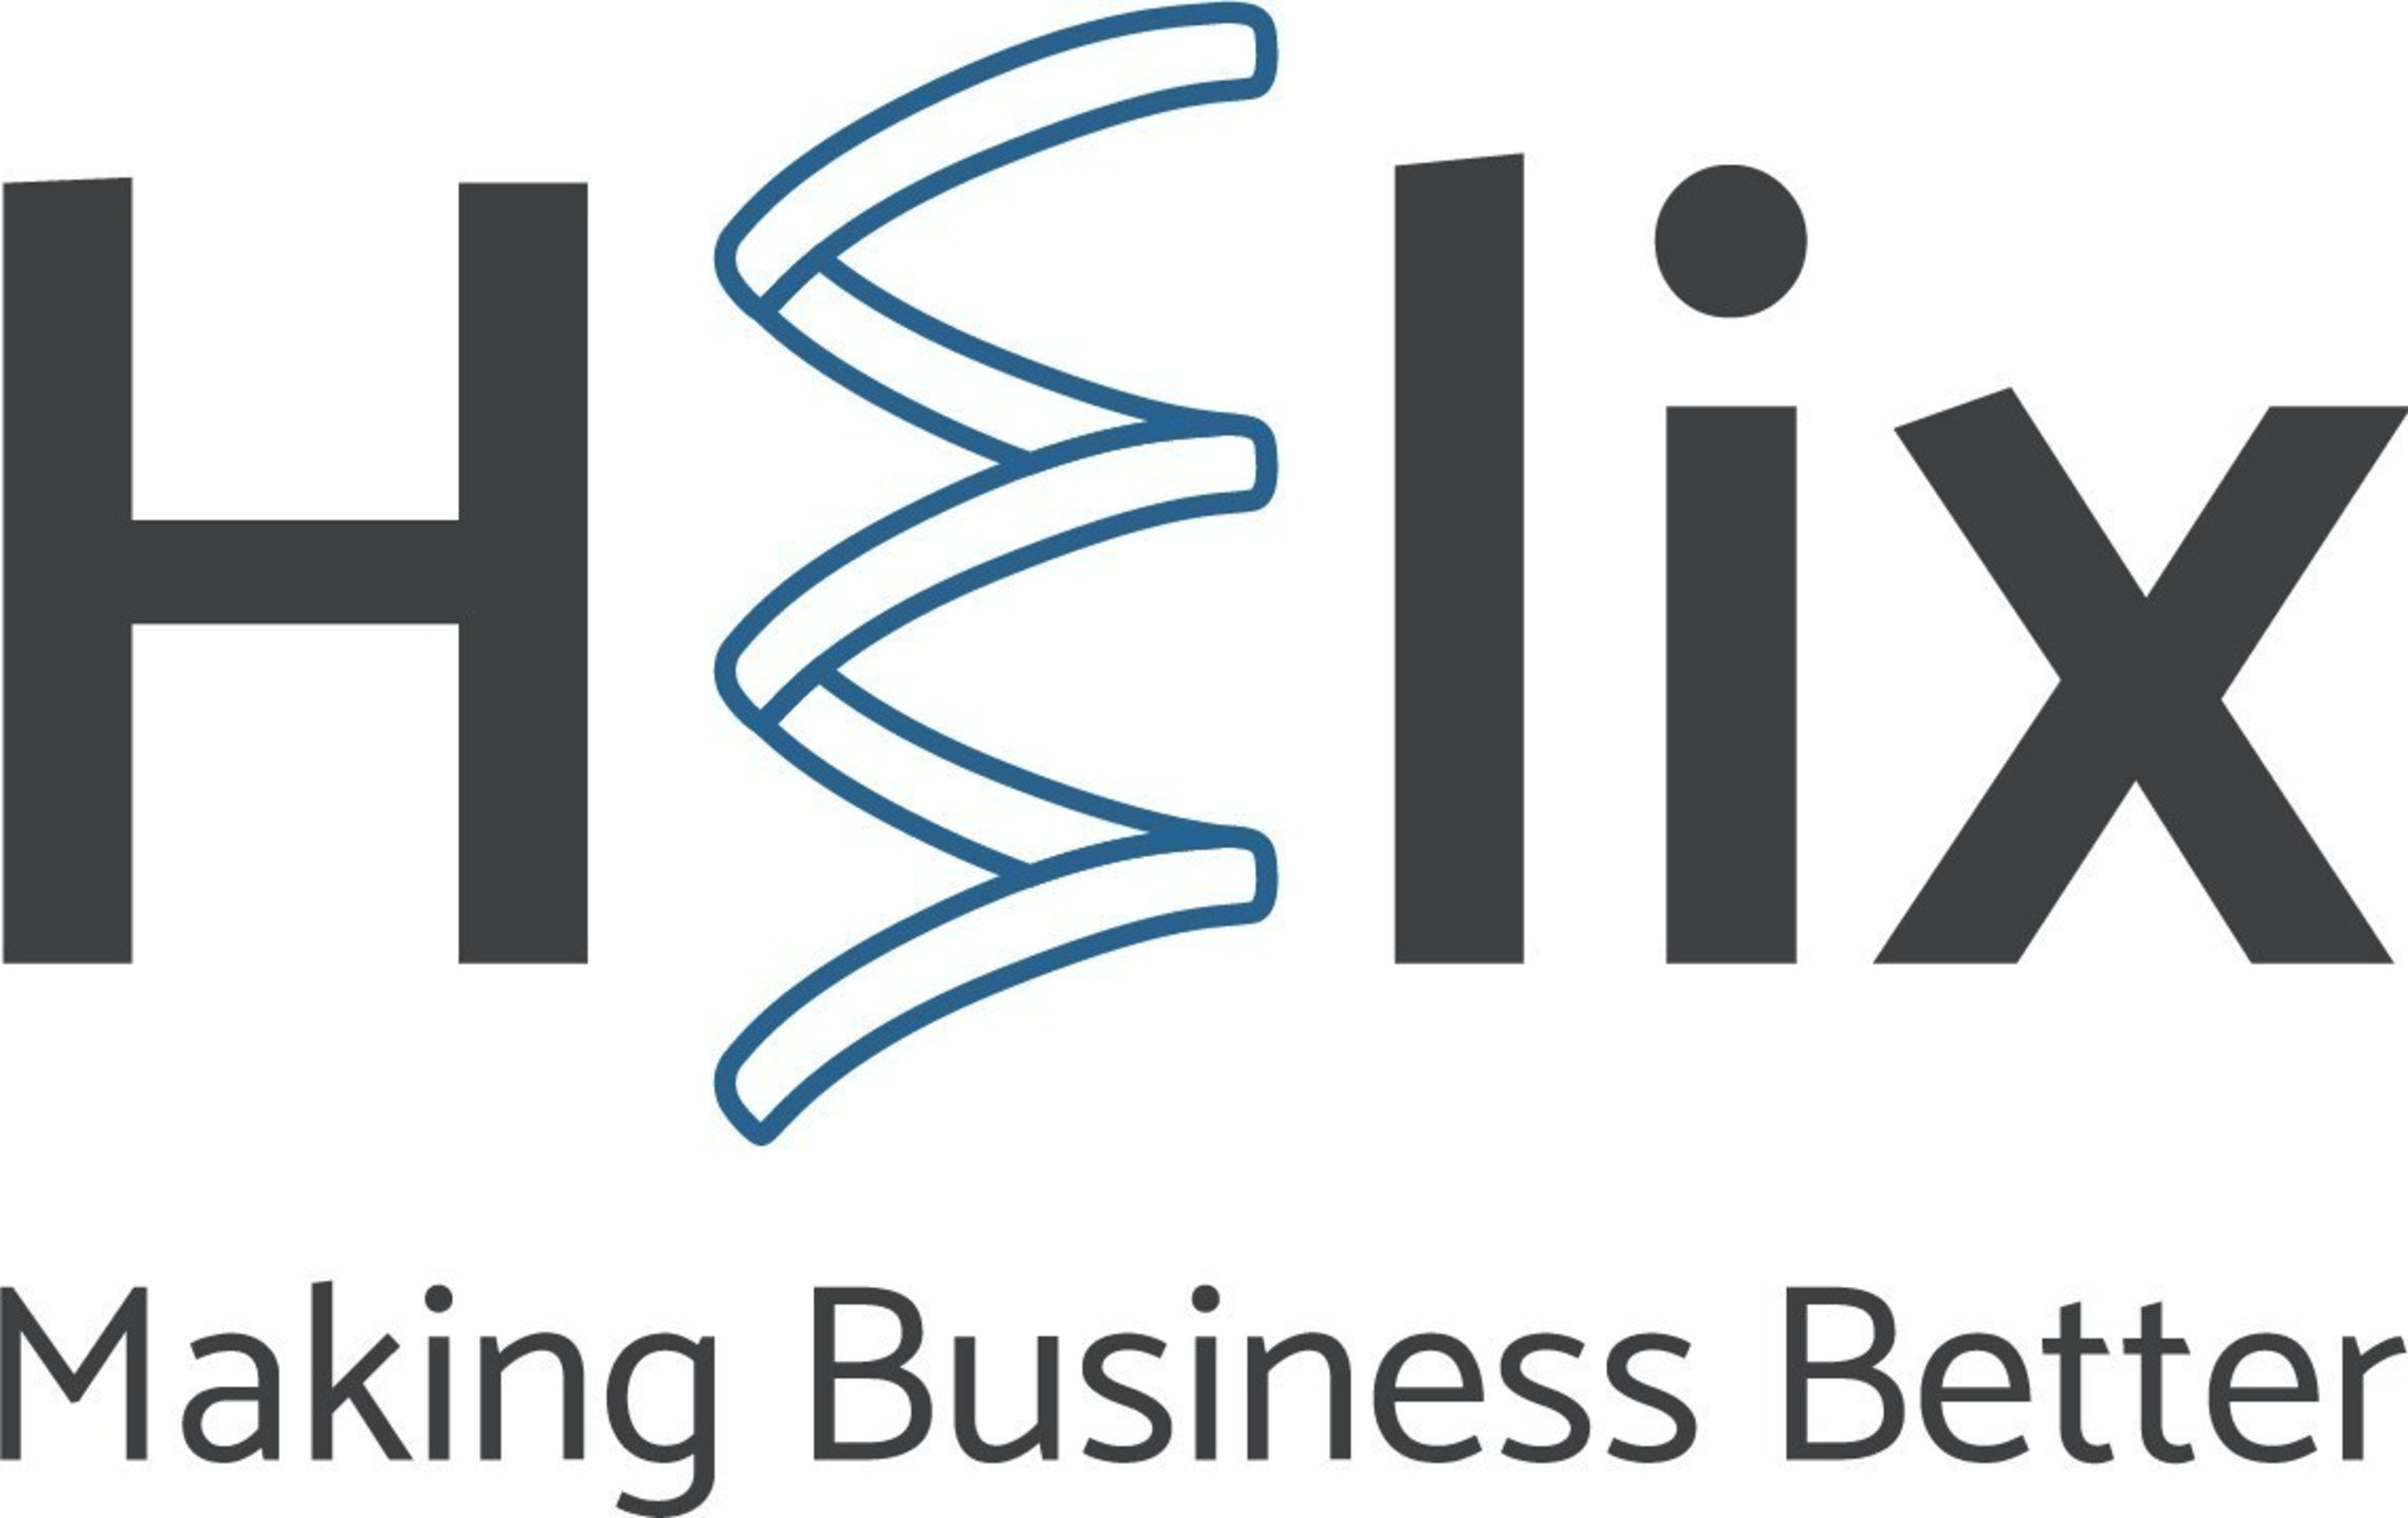 Metric Loop Releases Beta Invitations for Its Revolutionary Software - Helix